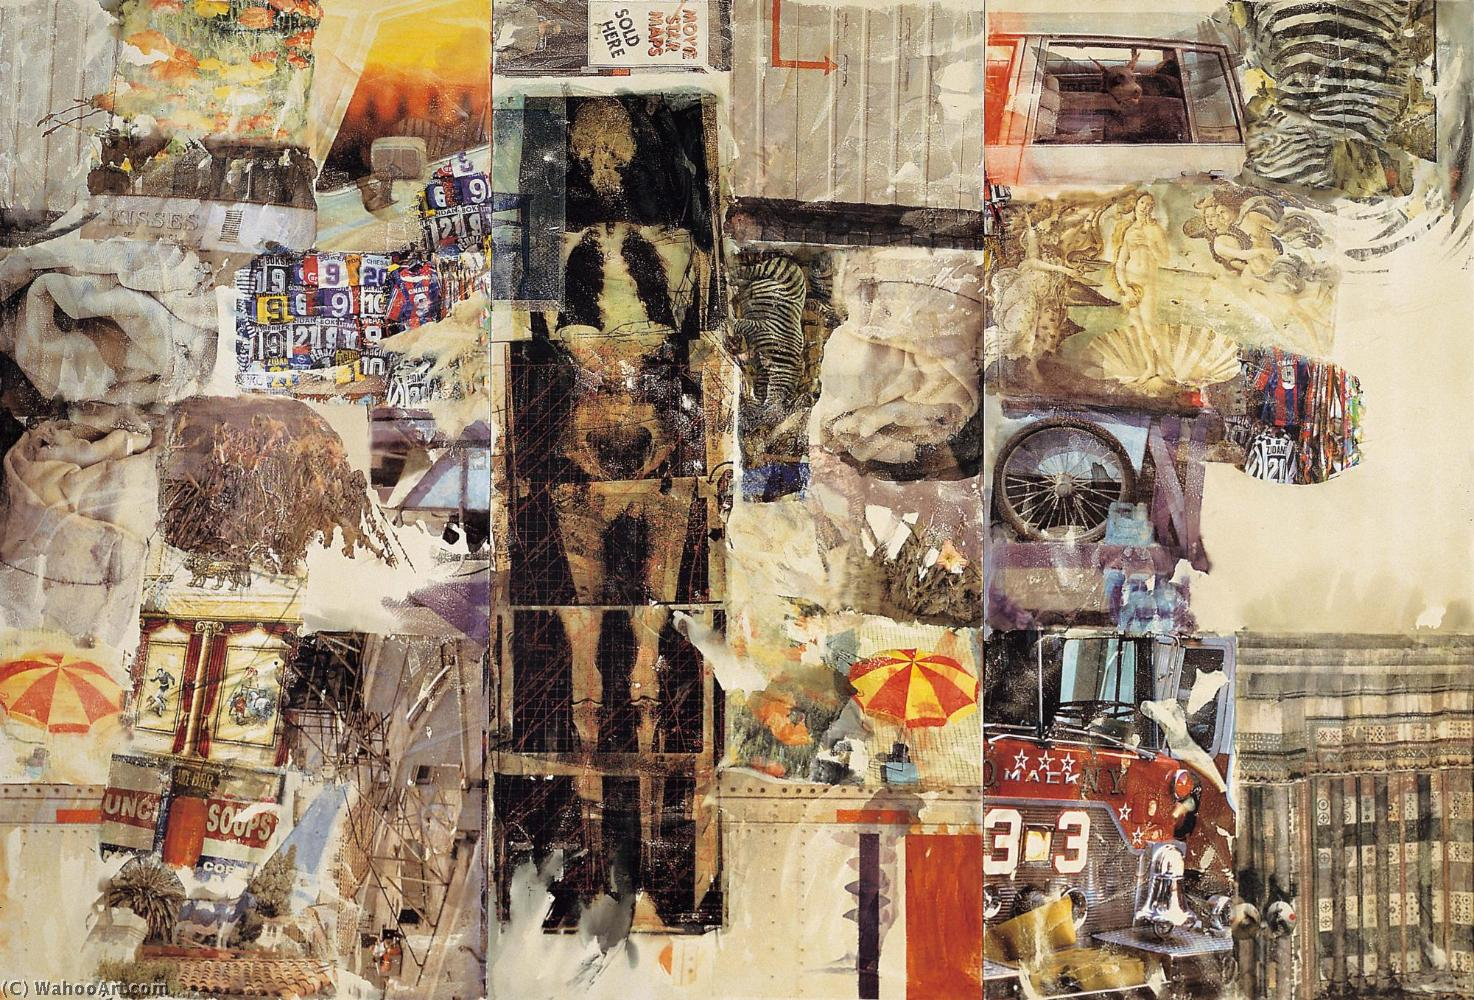 Mirthday homme de Robert Rauschenberg (1925-2008, United States) | Reproductions D'art Sur Toile | WahooArt.com